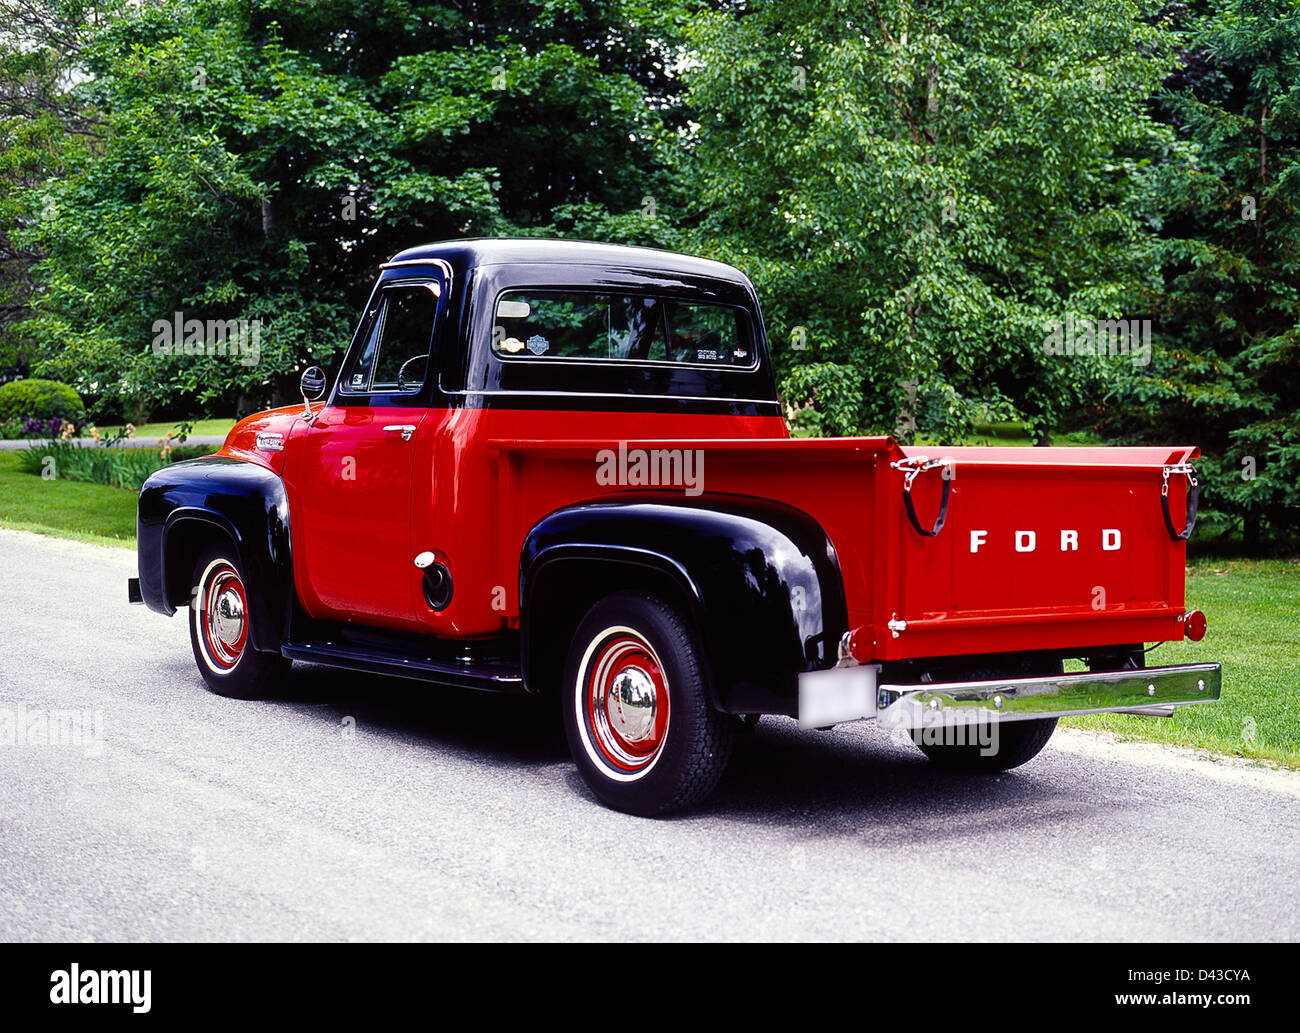 1953 Ford Stock Photos Images Alamy 1954 Truck Clip Art F 100 Pick Up Image